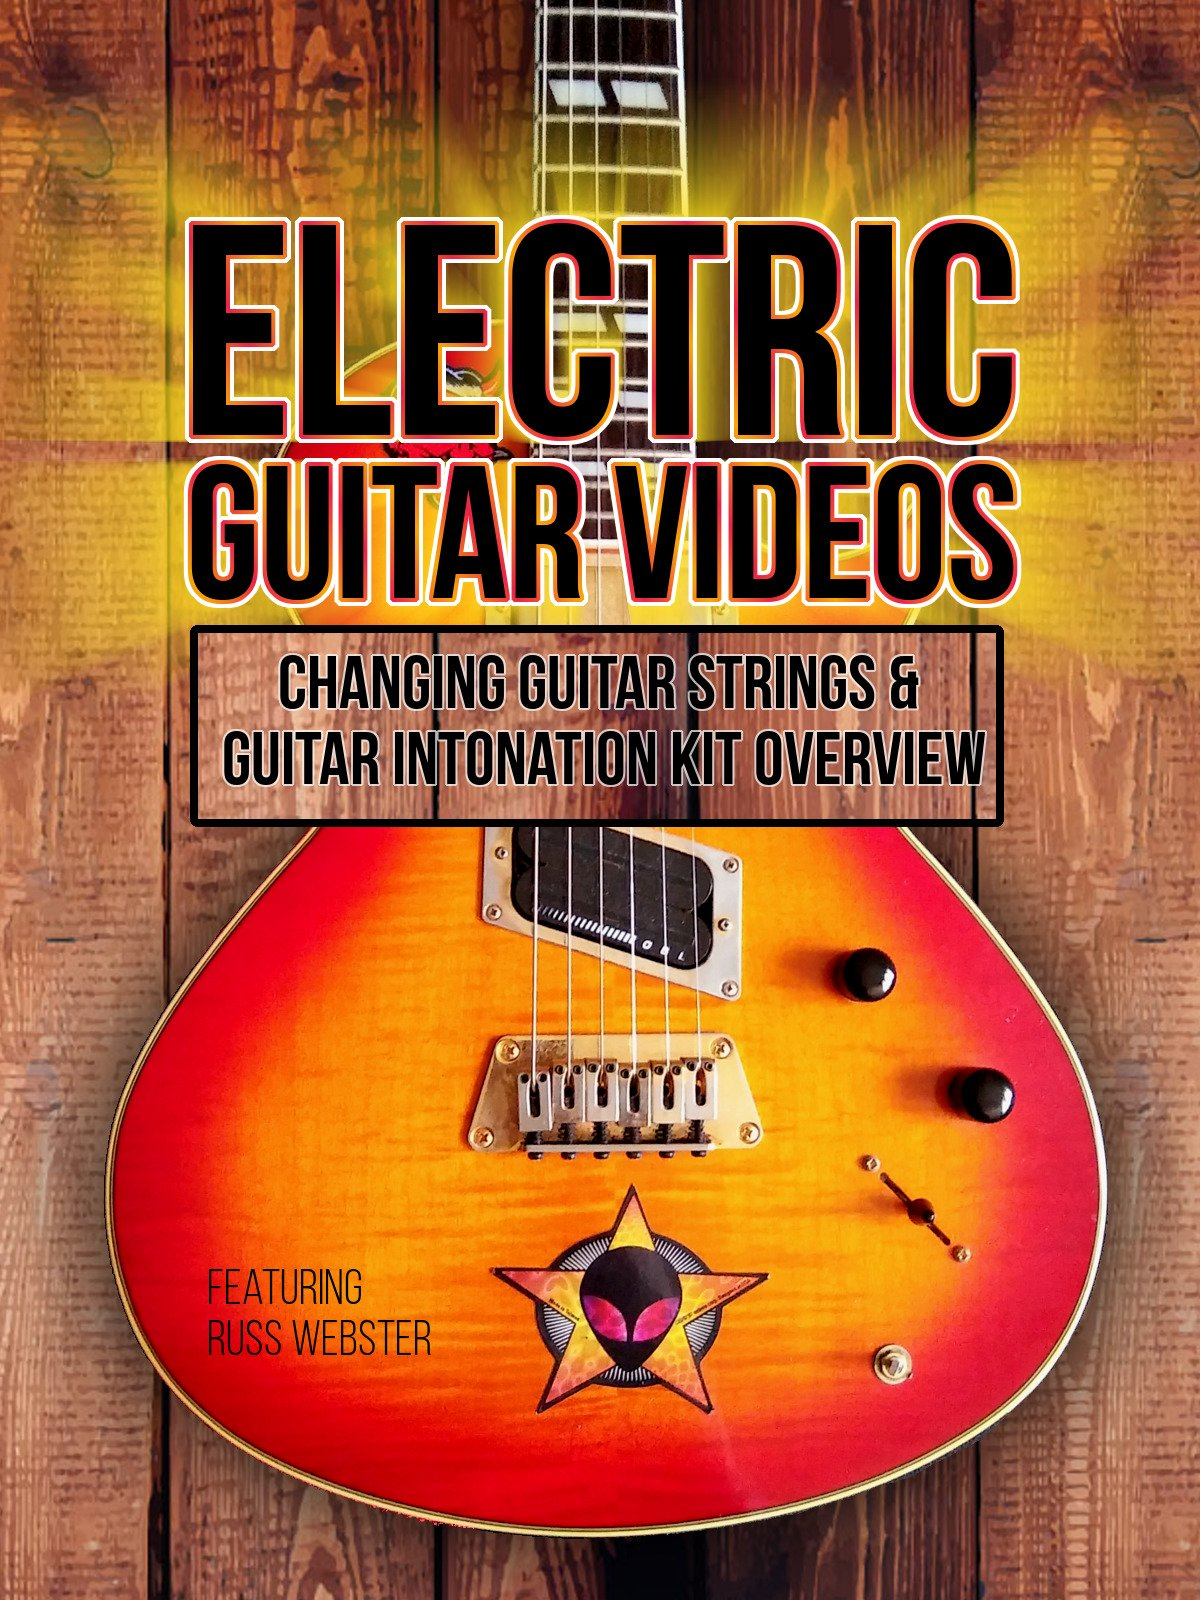 Electric Guitar Videos: Changing Guitar Strings & Guitar Intonation Kit Overview